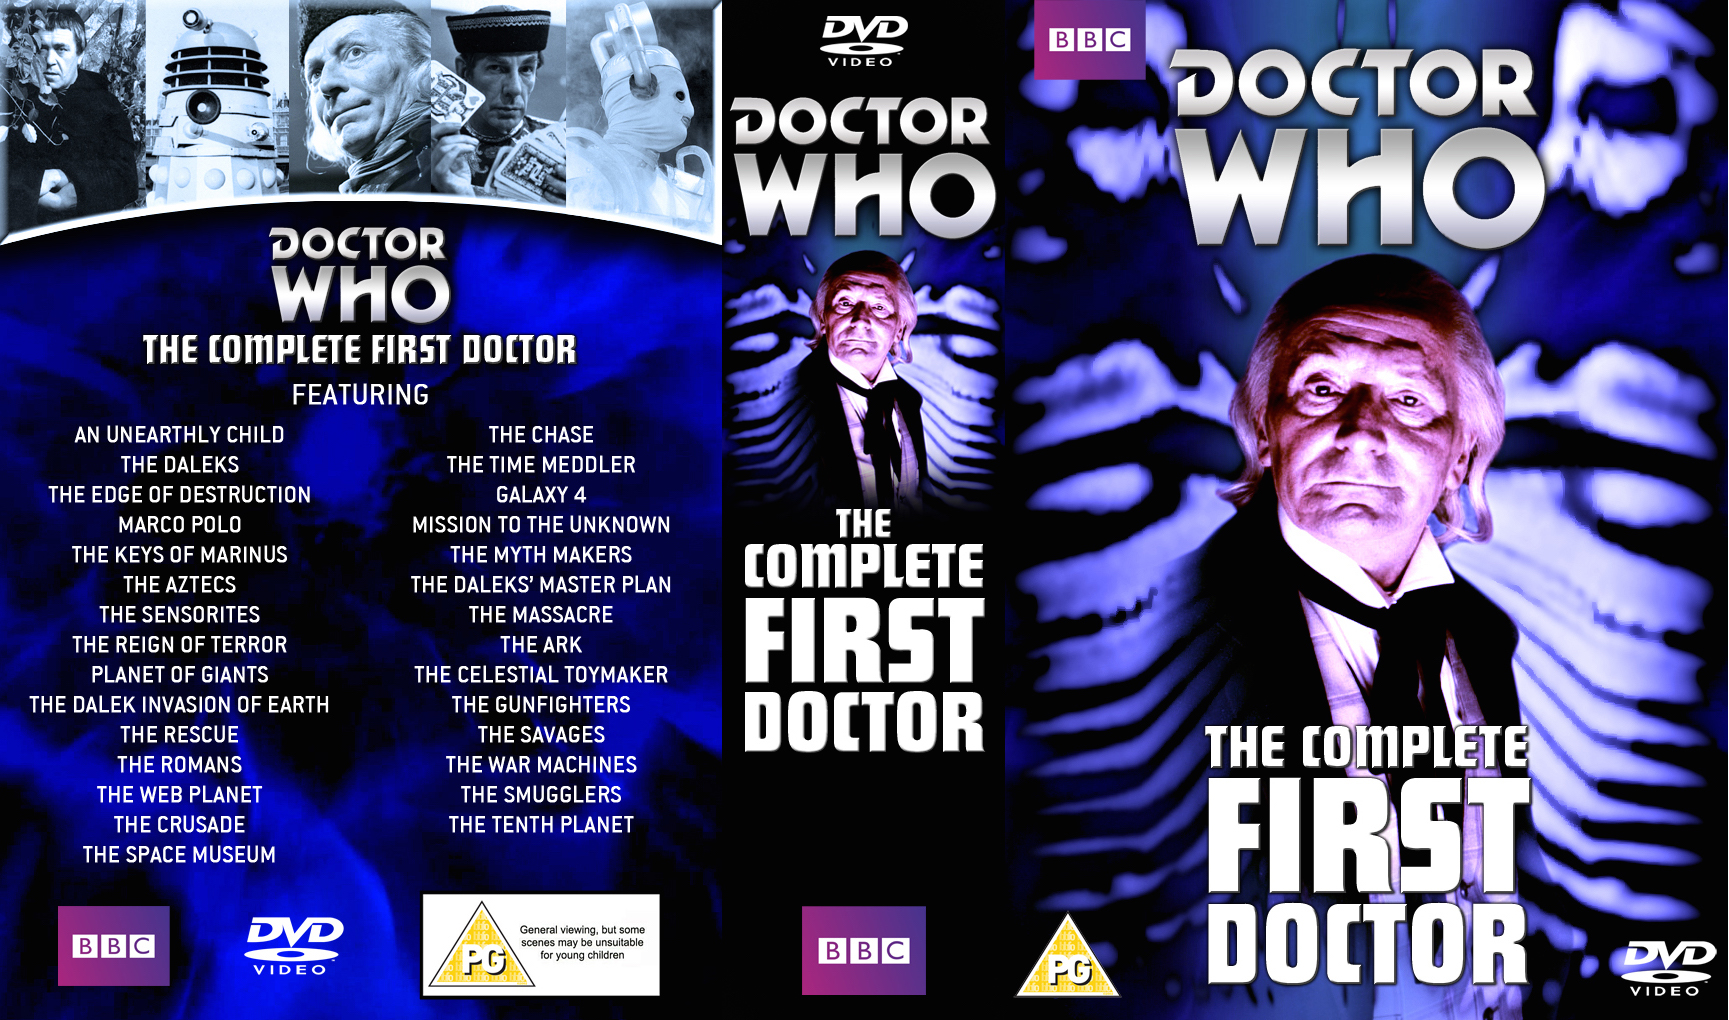 The Complete First Doctor Boxset by Cotterill23